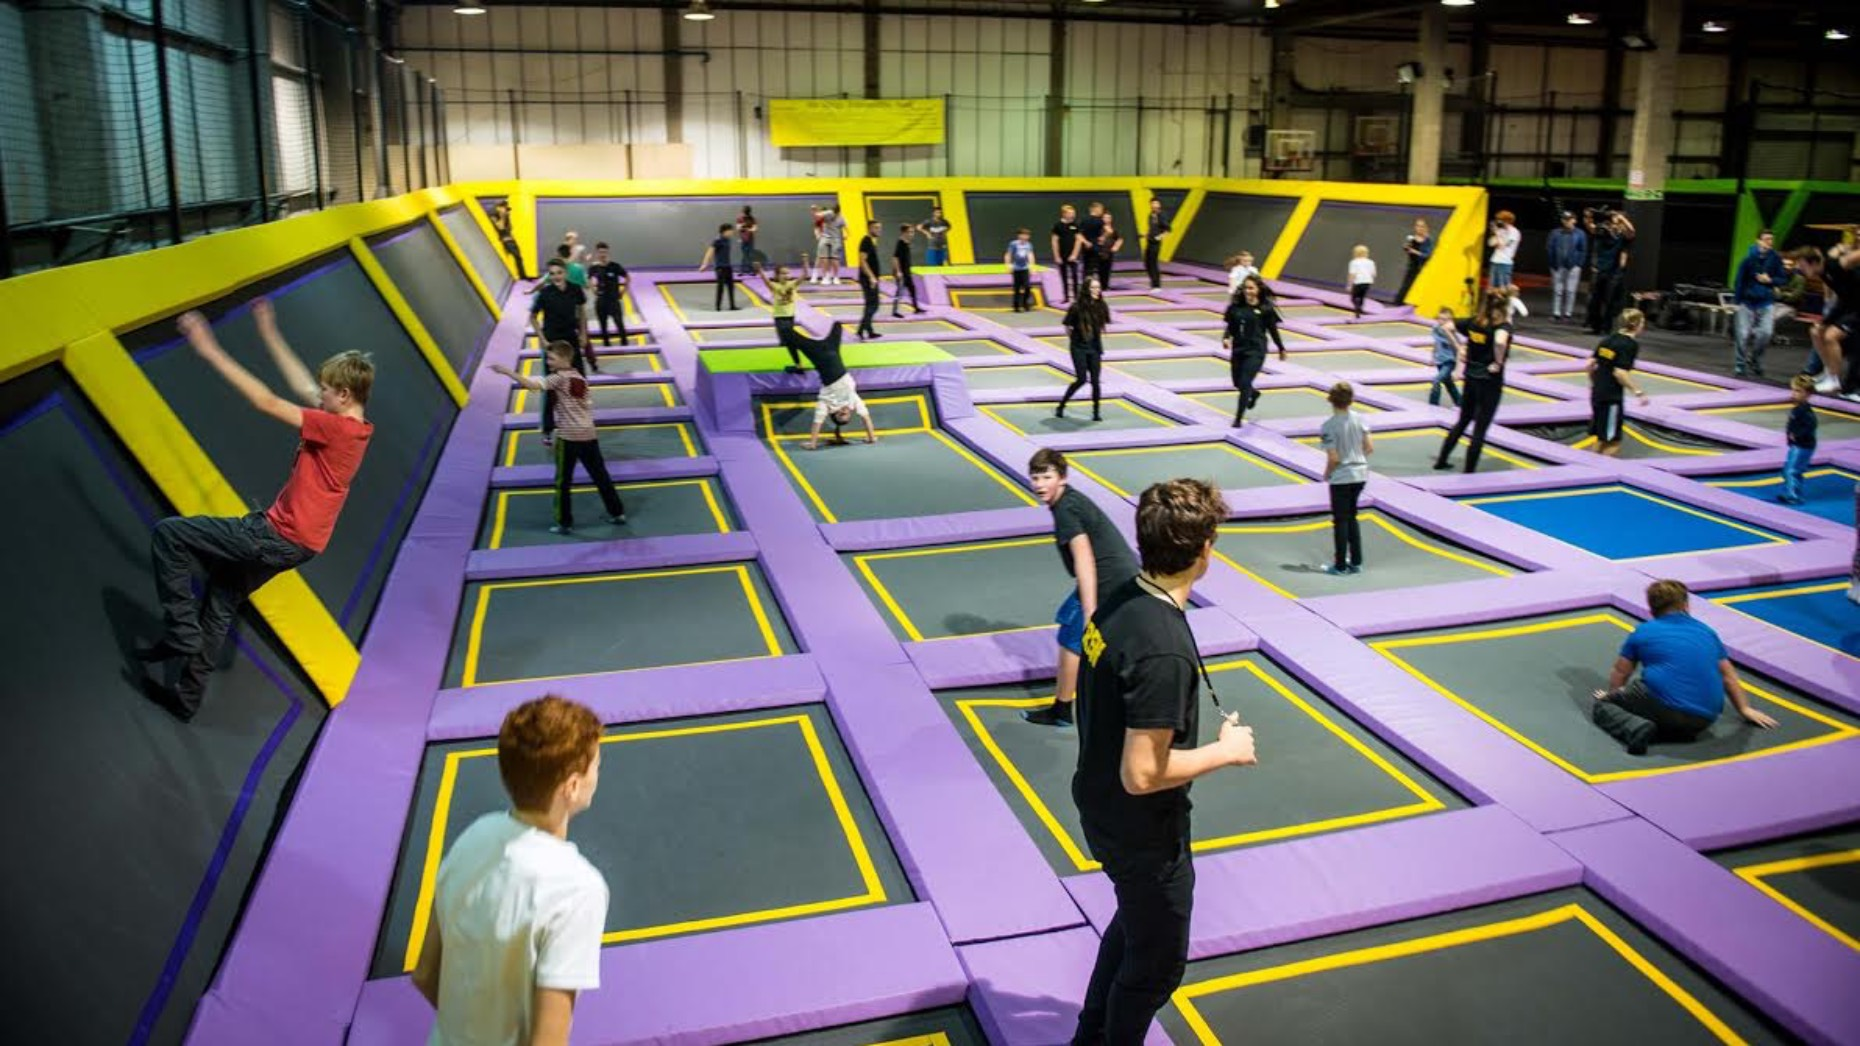 The site in Scunthorpe will be similar to the Doncaster trampoline park.